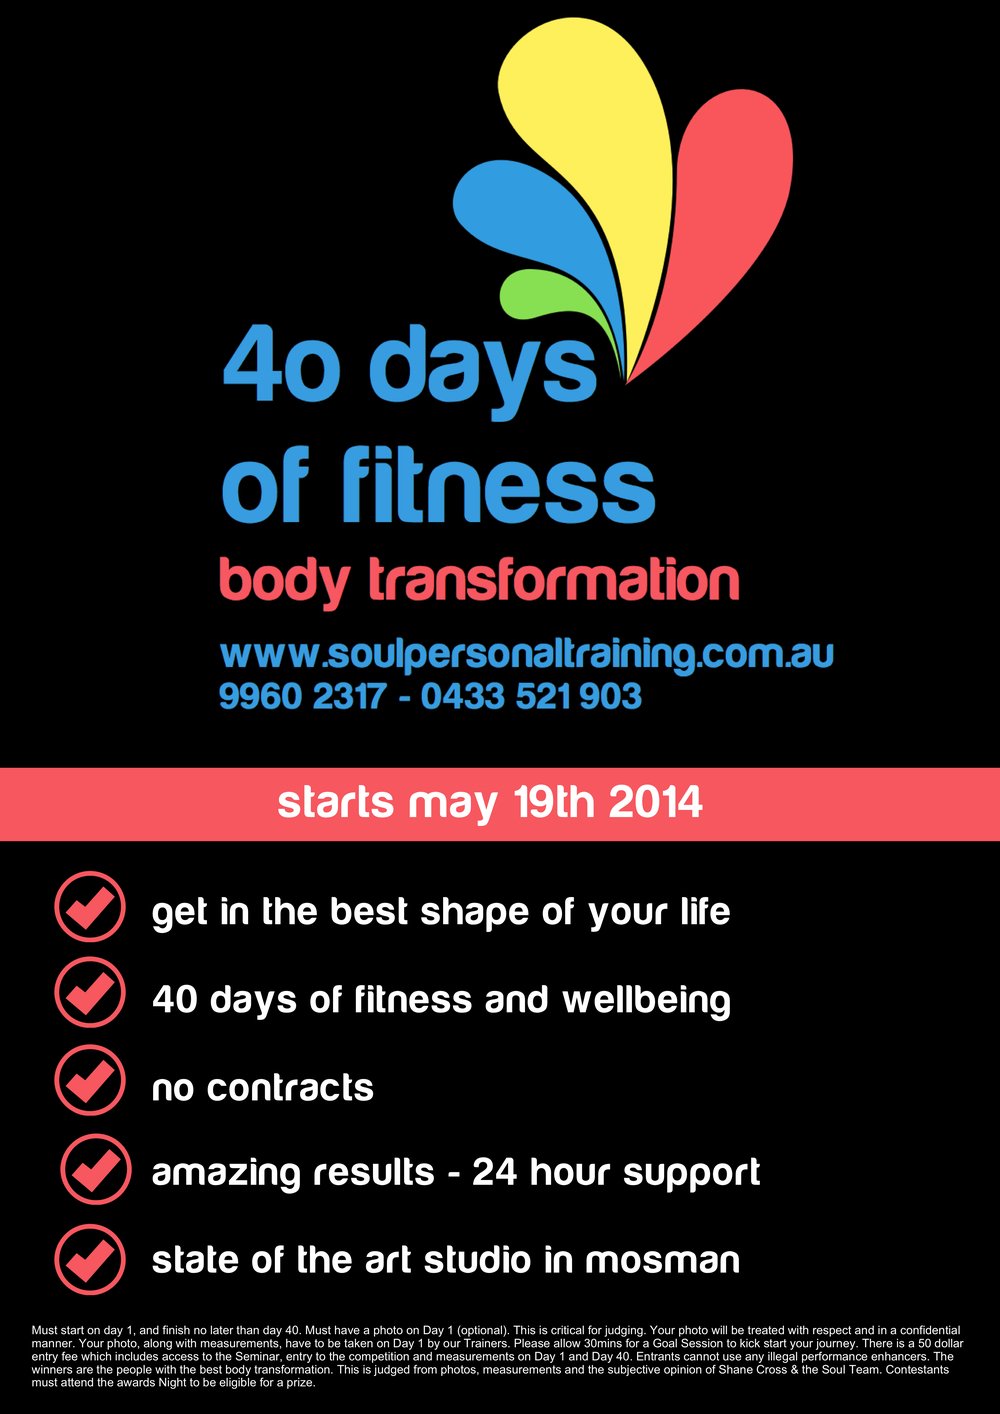 40 Days of Fitness Starts May 19th